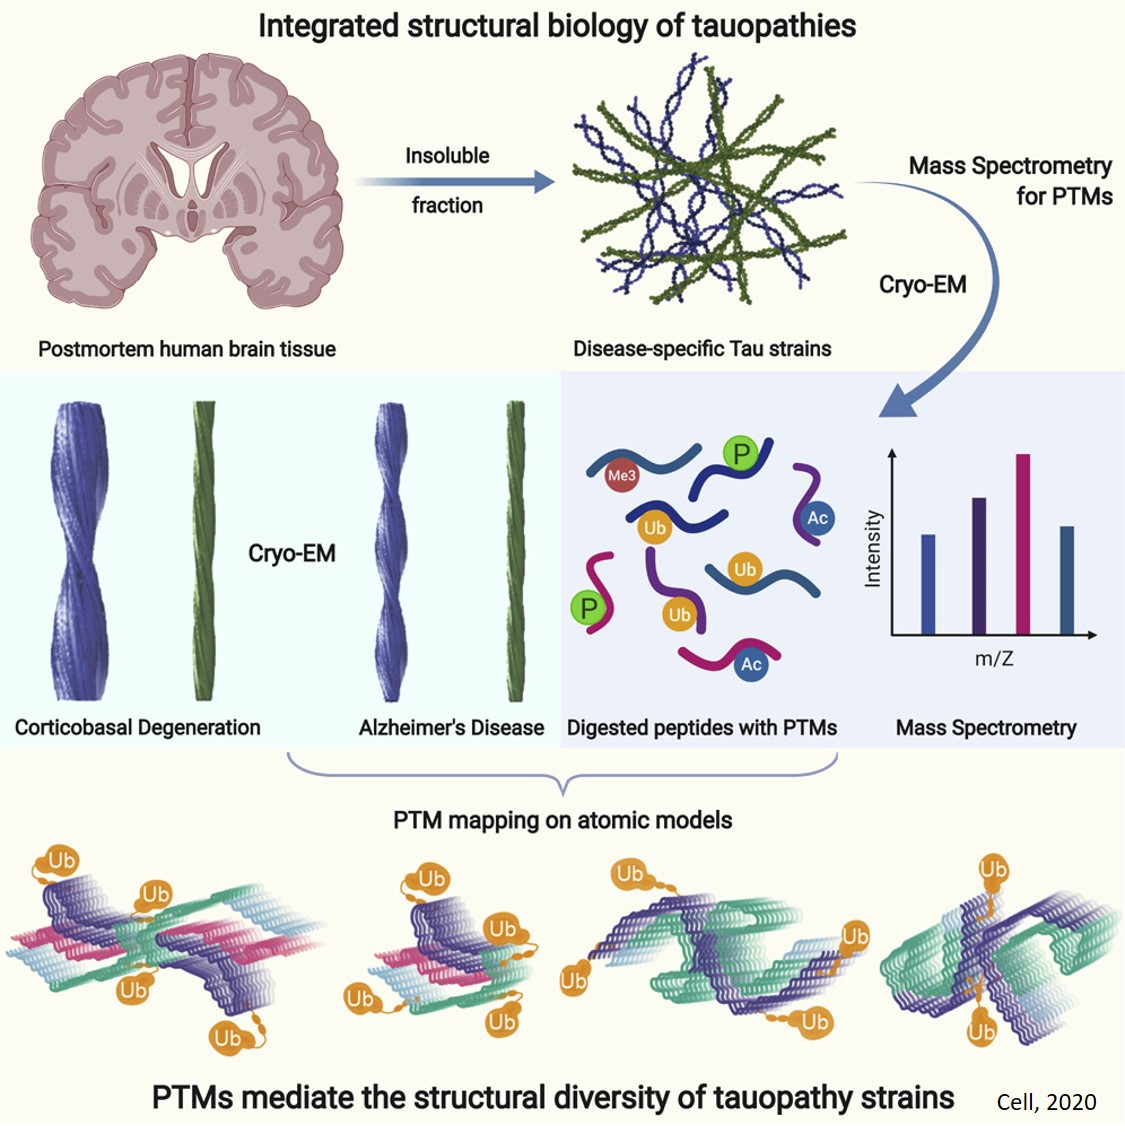 Posttranslational Modifications Mediate the Structural Diversity of Tauopathies